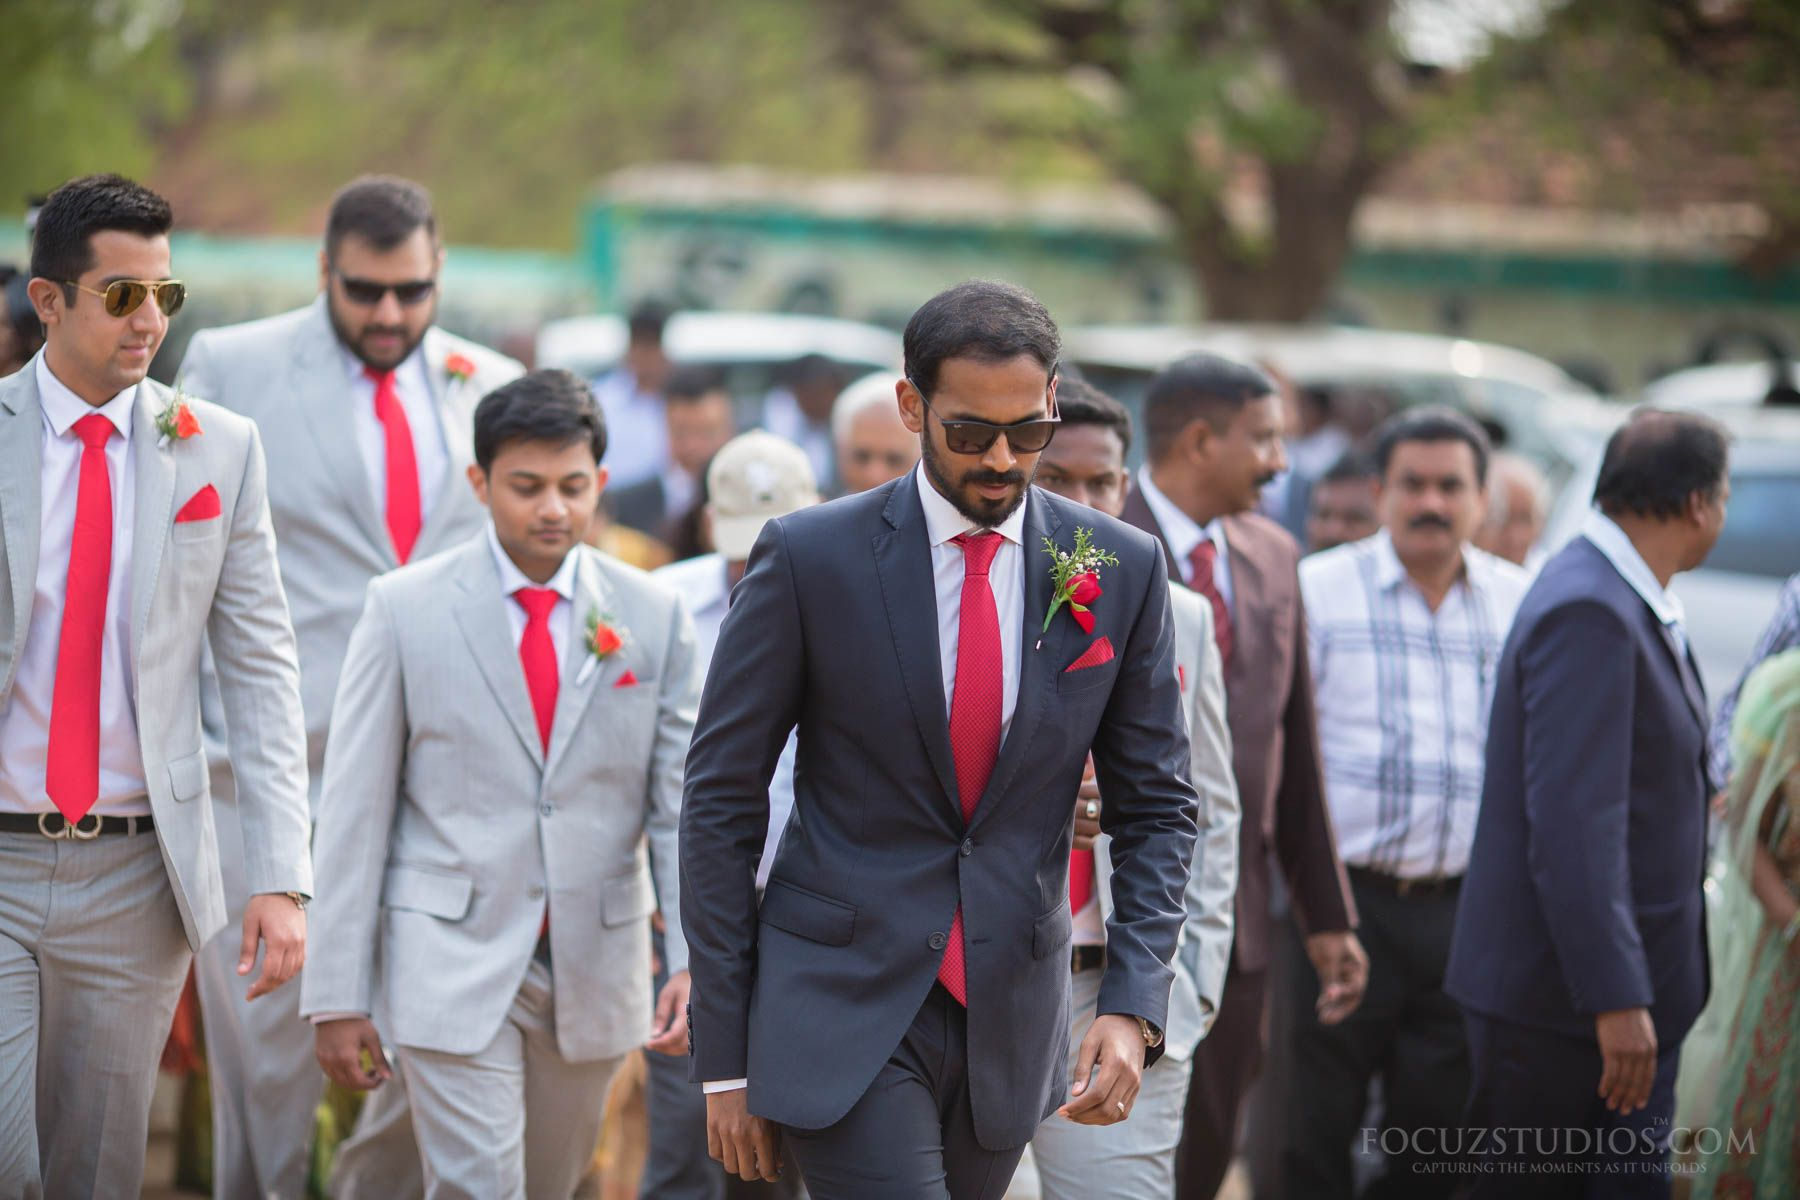 Best Christian Wedding Photography in Tamil Nadu | Wedding photography, Photography, Christian